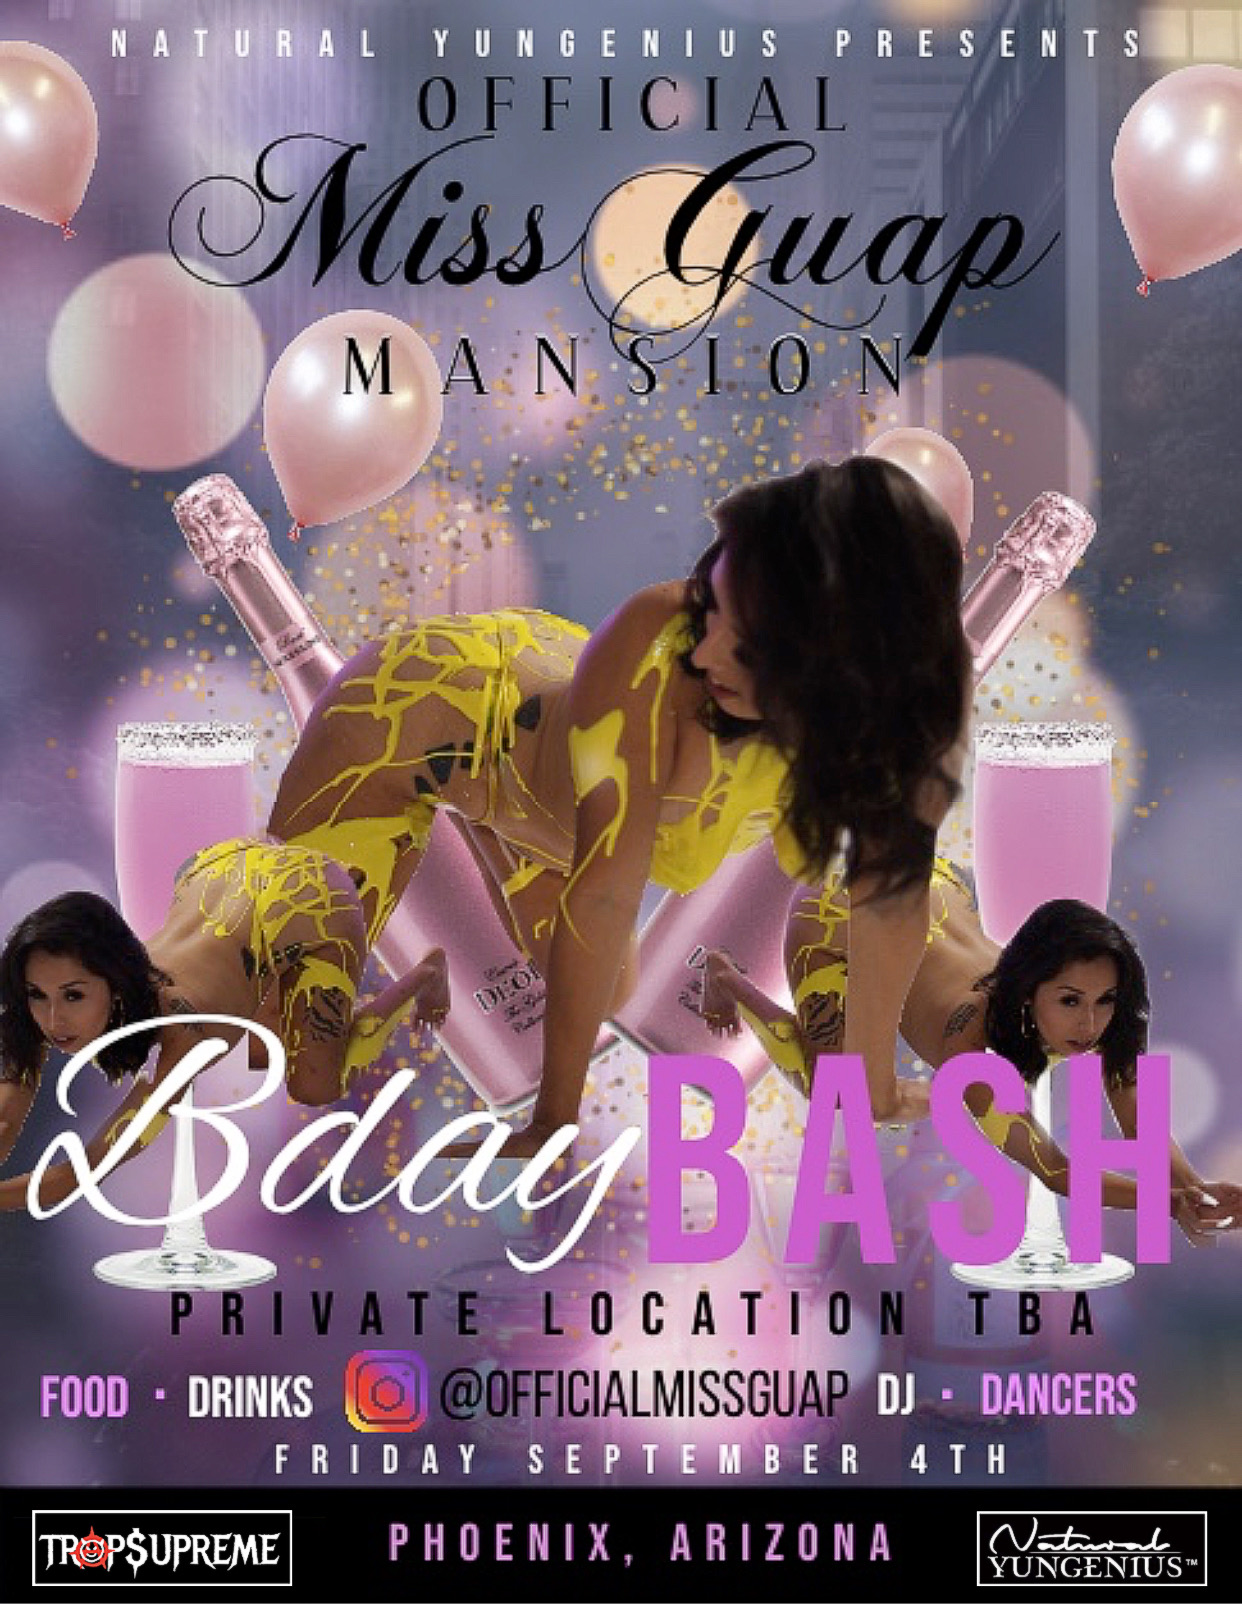 Official MissGuap  Mansion  Party